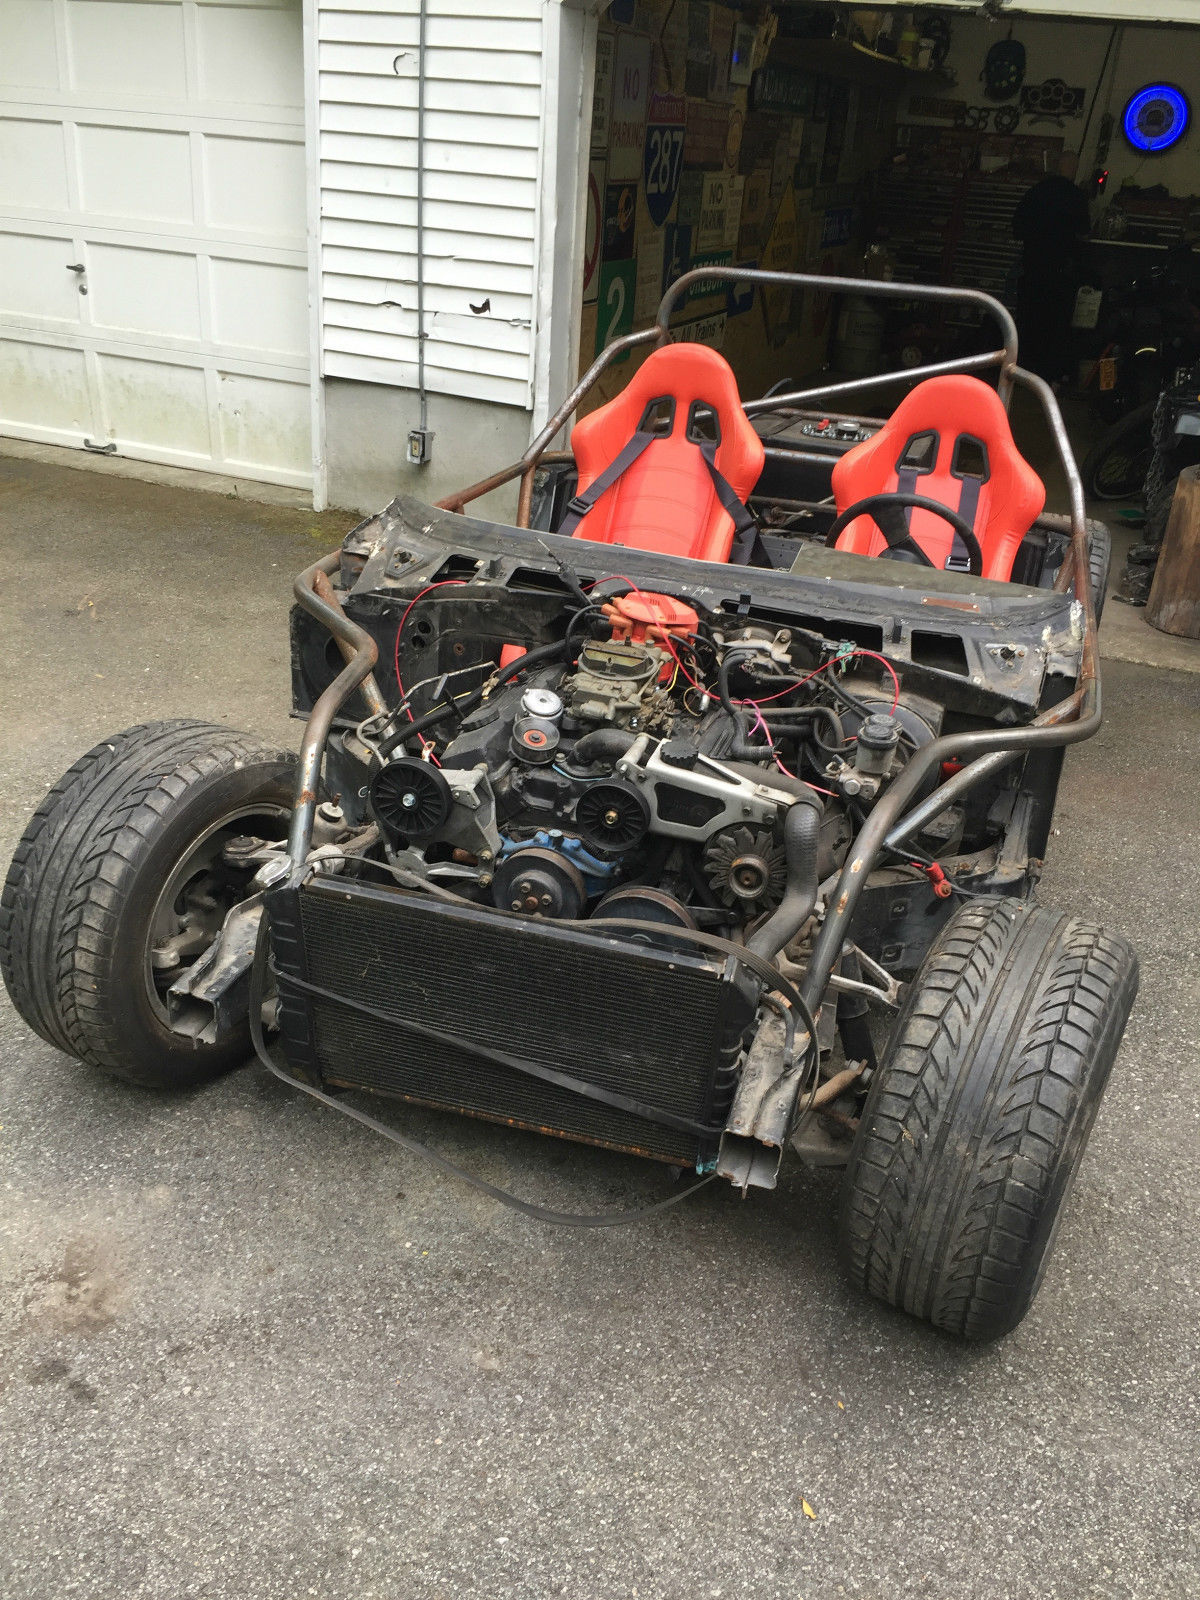 Daily Turismo Auction Watch 1984 Chevrolet Corvette C4 Chassis 1968 Project Car